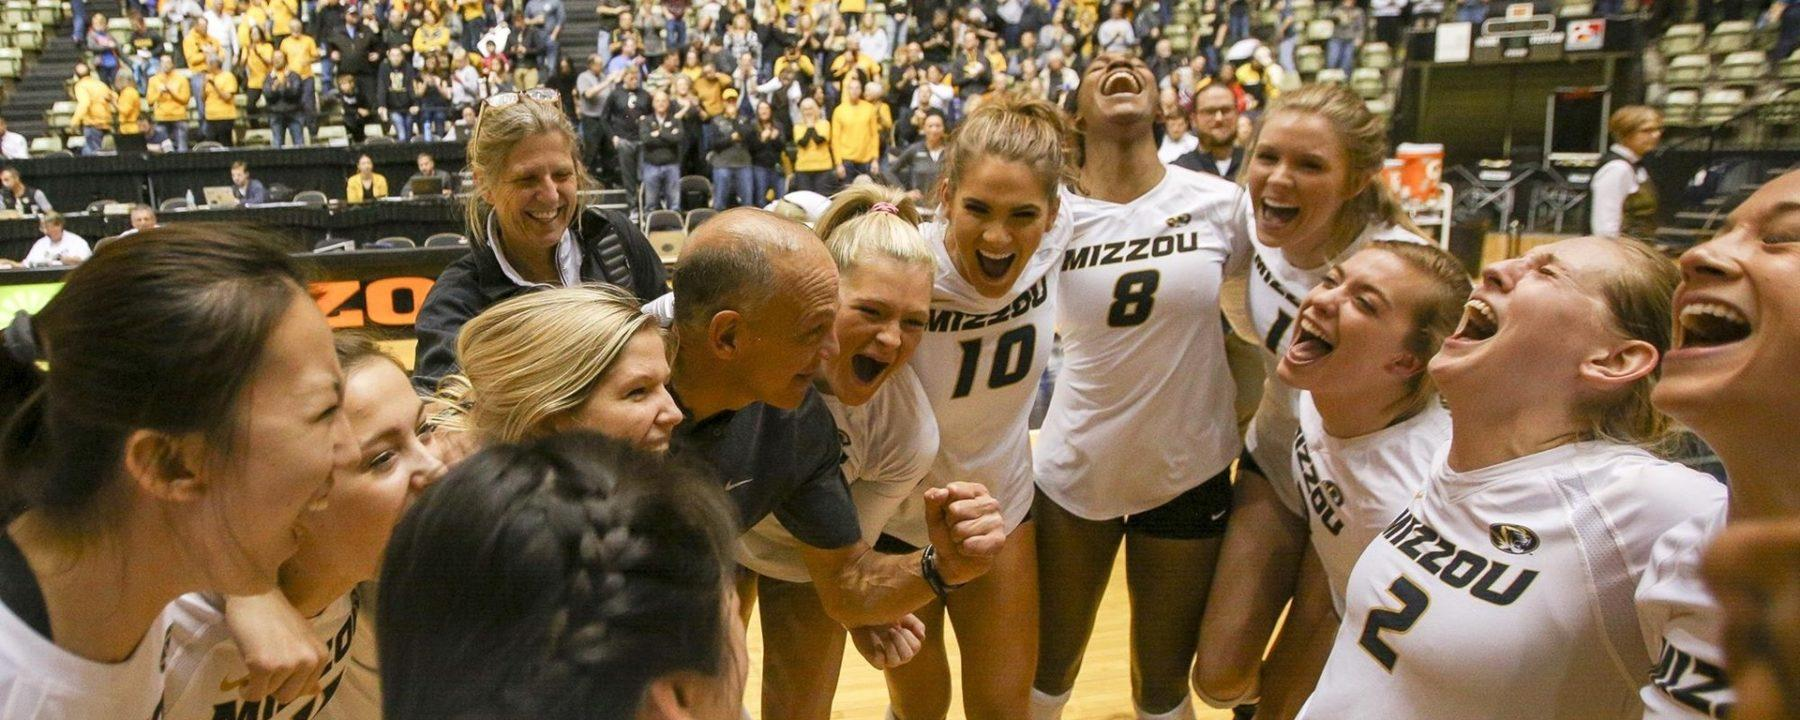 Missouri Brings on Three Freshmen for the 2017 Season